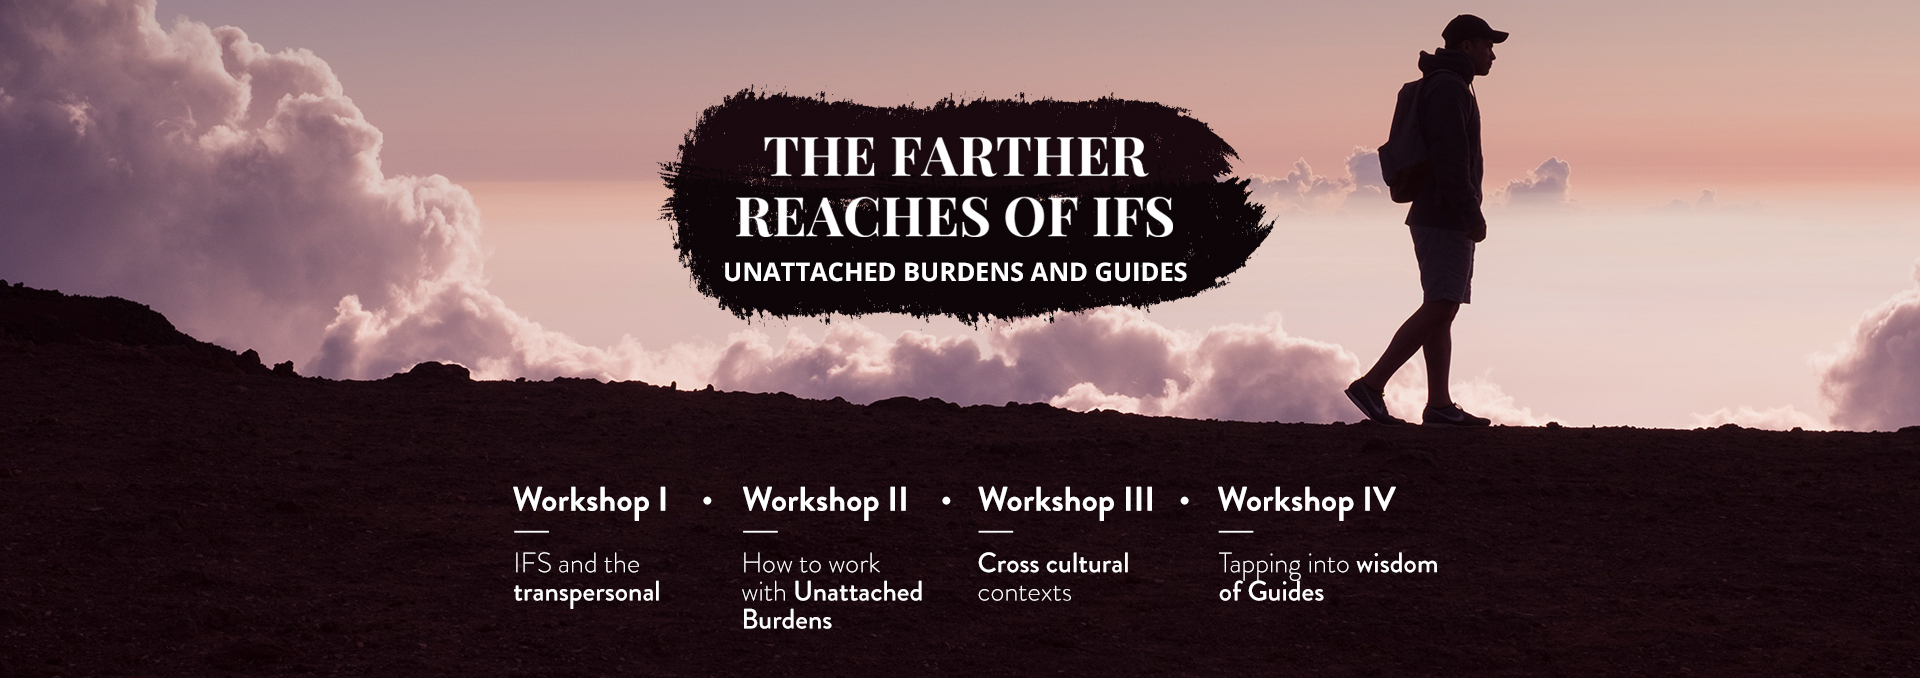 The farther reaches of IFS workshops tablet